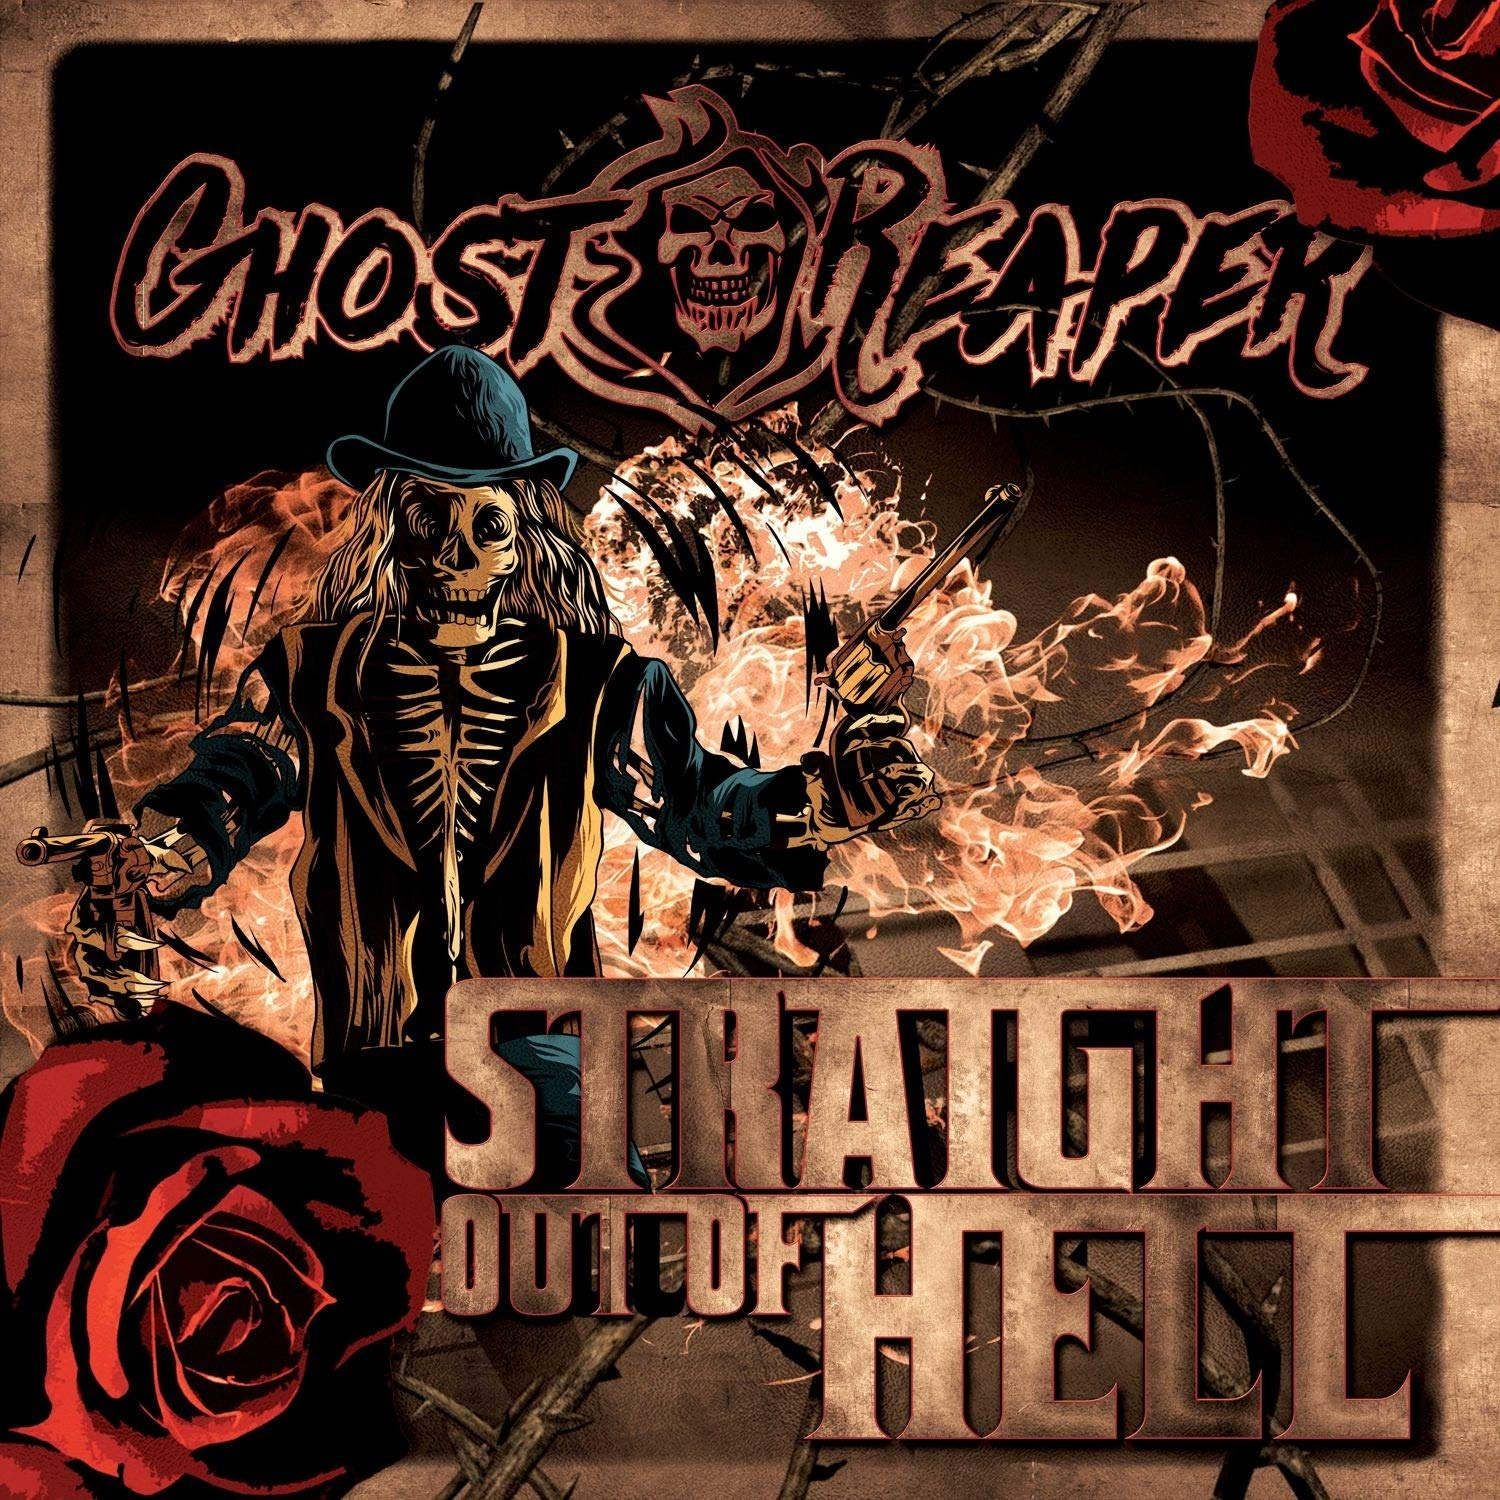 GhostReaper - Straight Out Of Hell